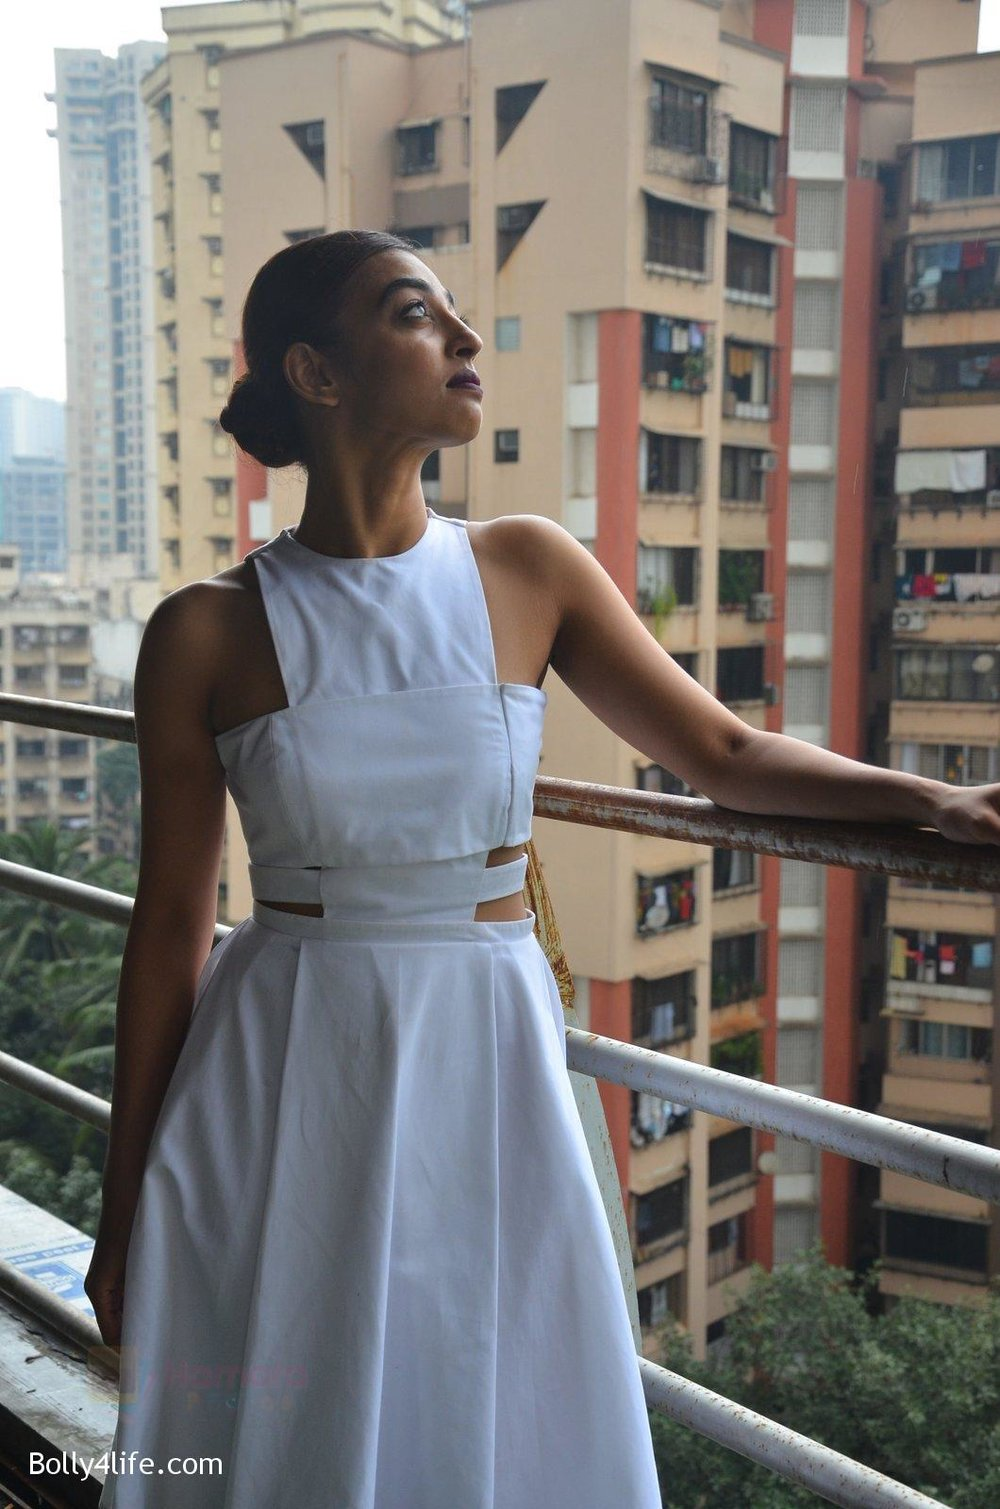 Radhika-Apte-at-Parched-Photoshoot-on-17th-Sept-2016-6.jpg